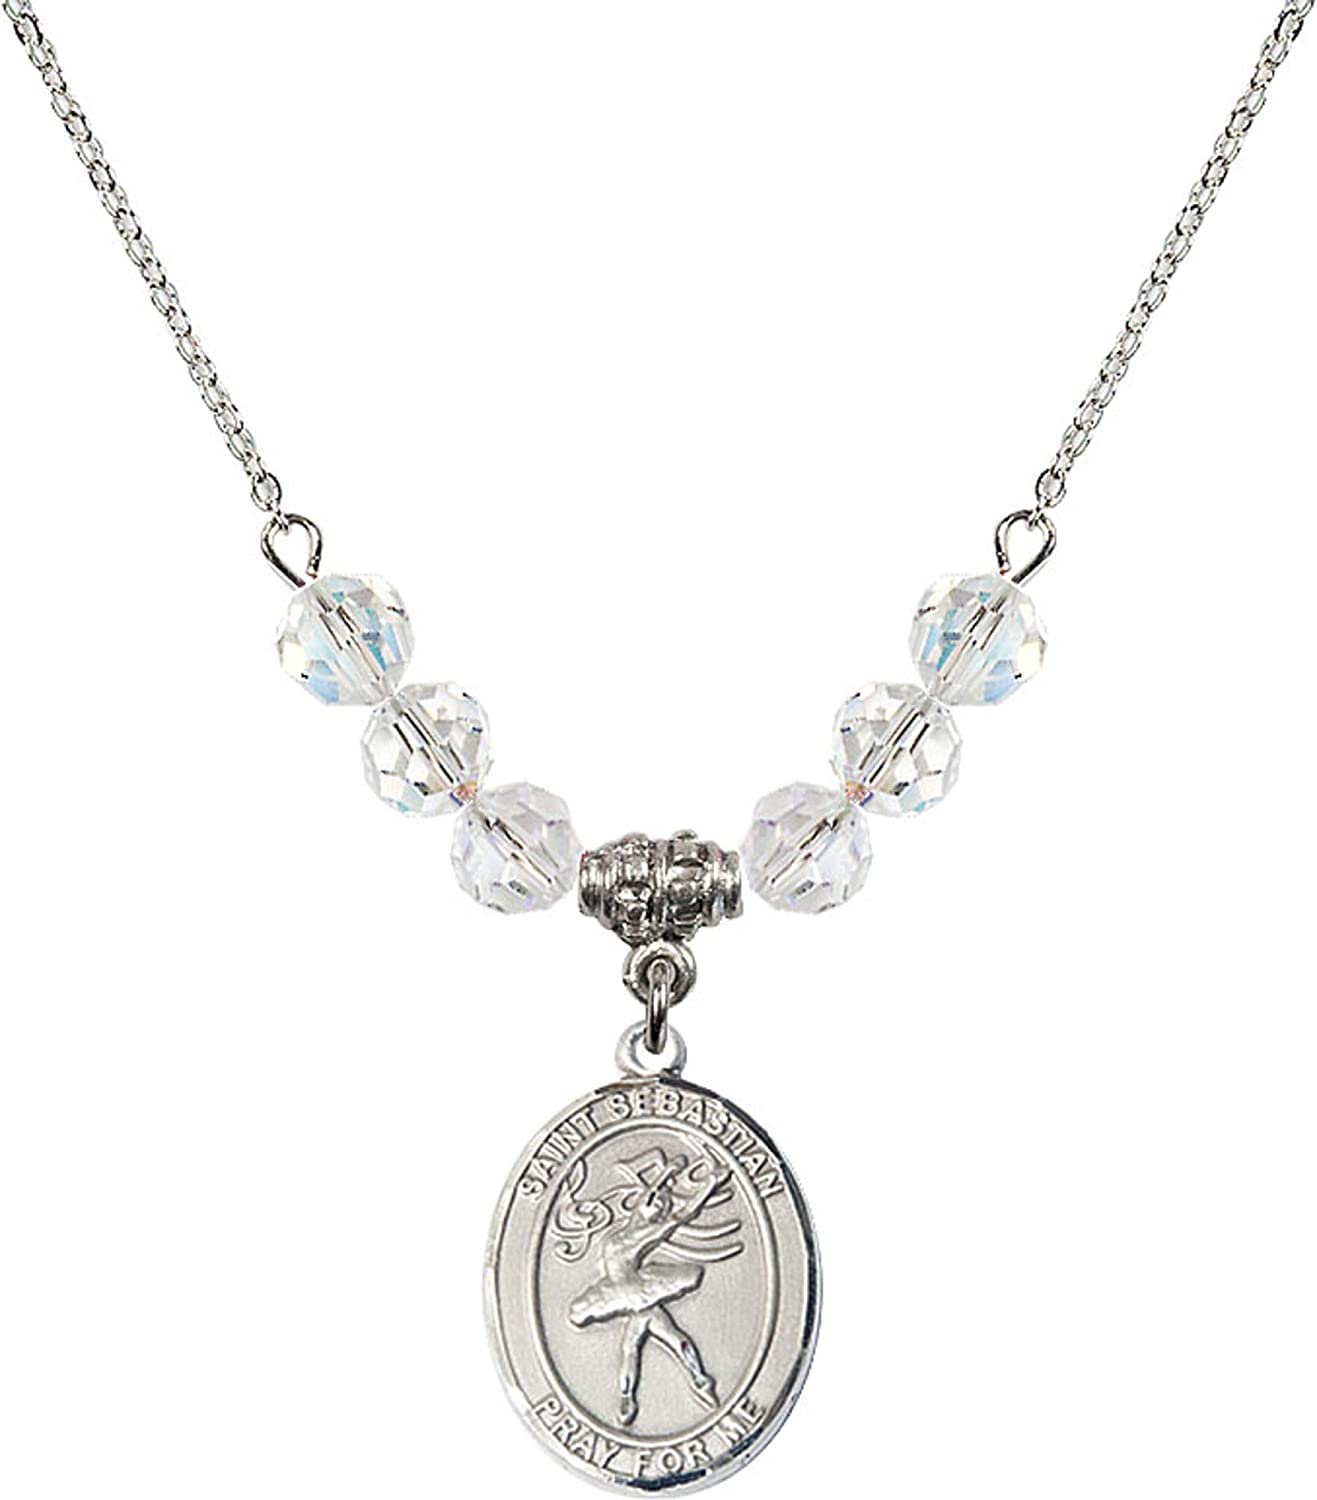 Bonyak Jewelry 18 Inch Rhodium Plated Necklace w// 6mm White April Birth Month Stone Beads and Saint Sebastian//Dance Charm